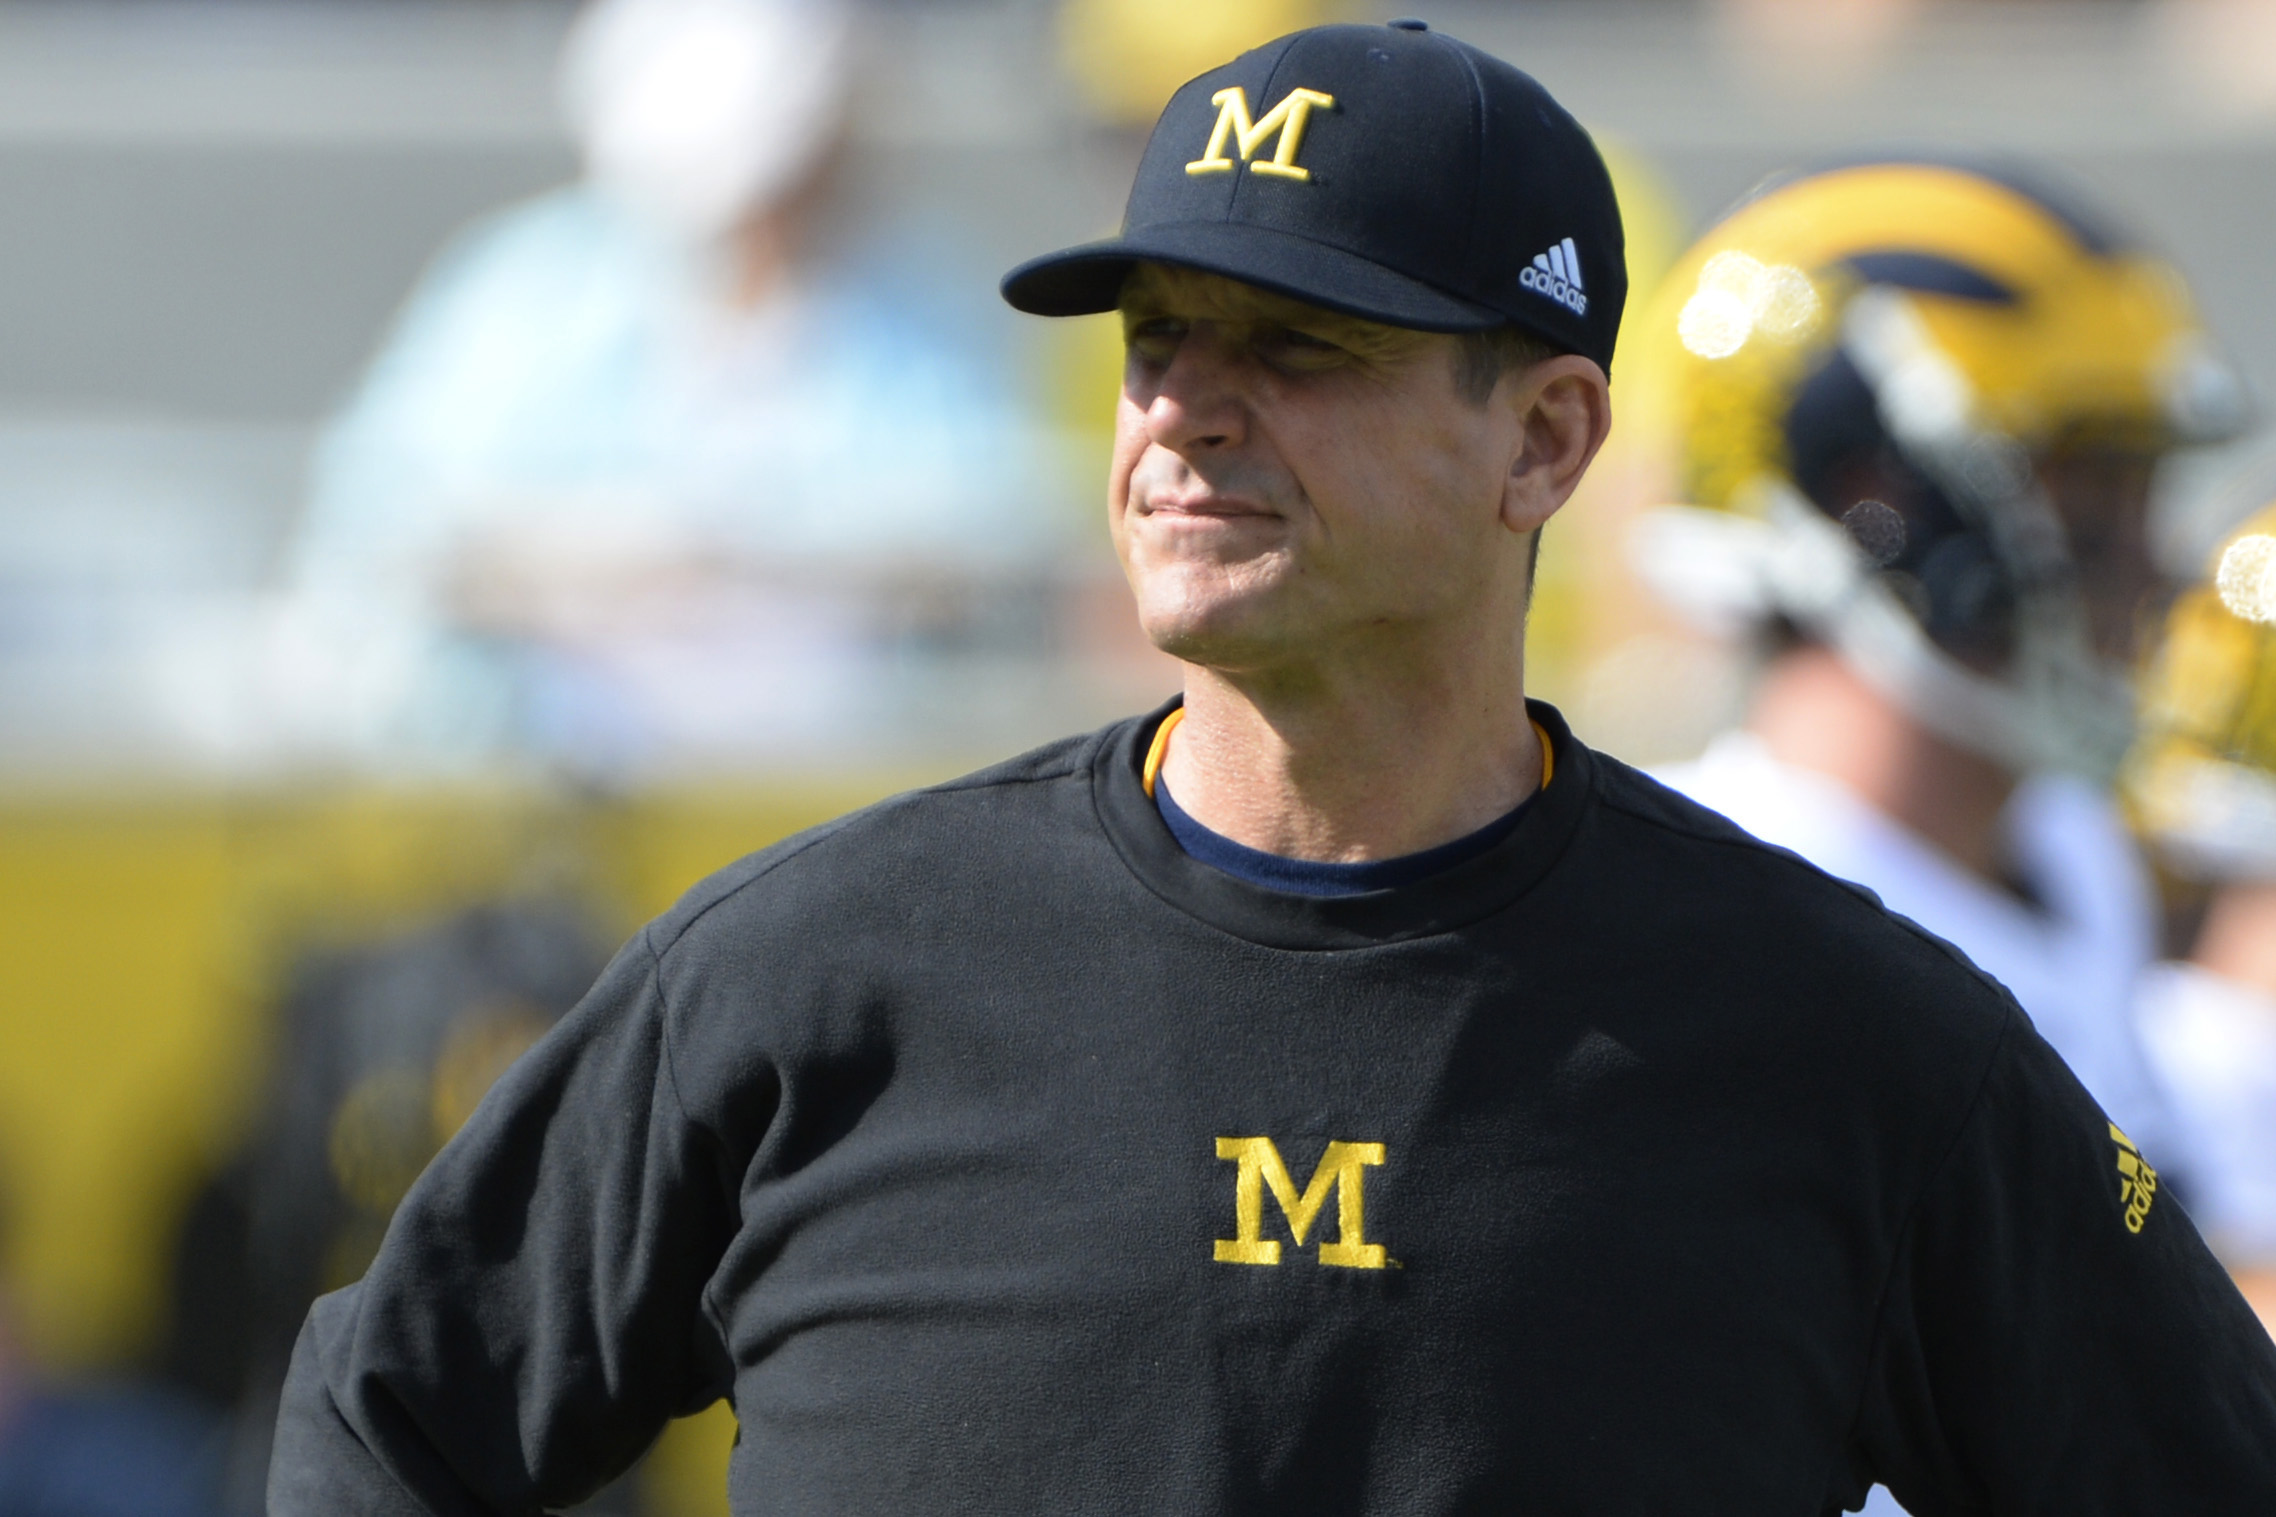 Jim Harbaugh capped a great first season at Michigan by embarrassing Florida